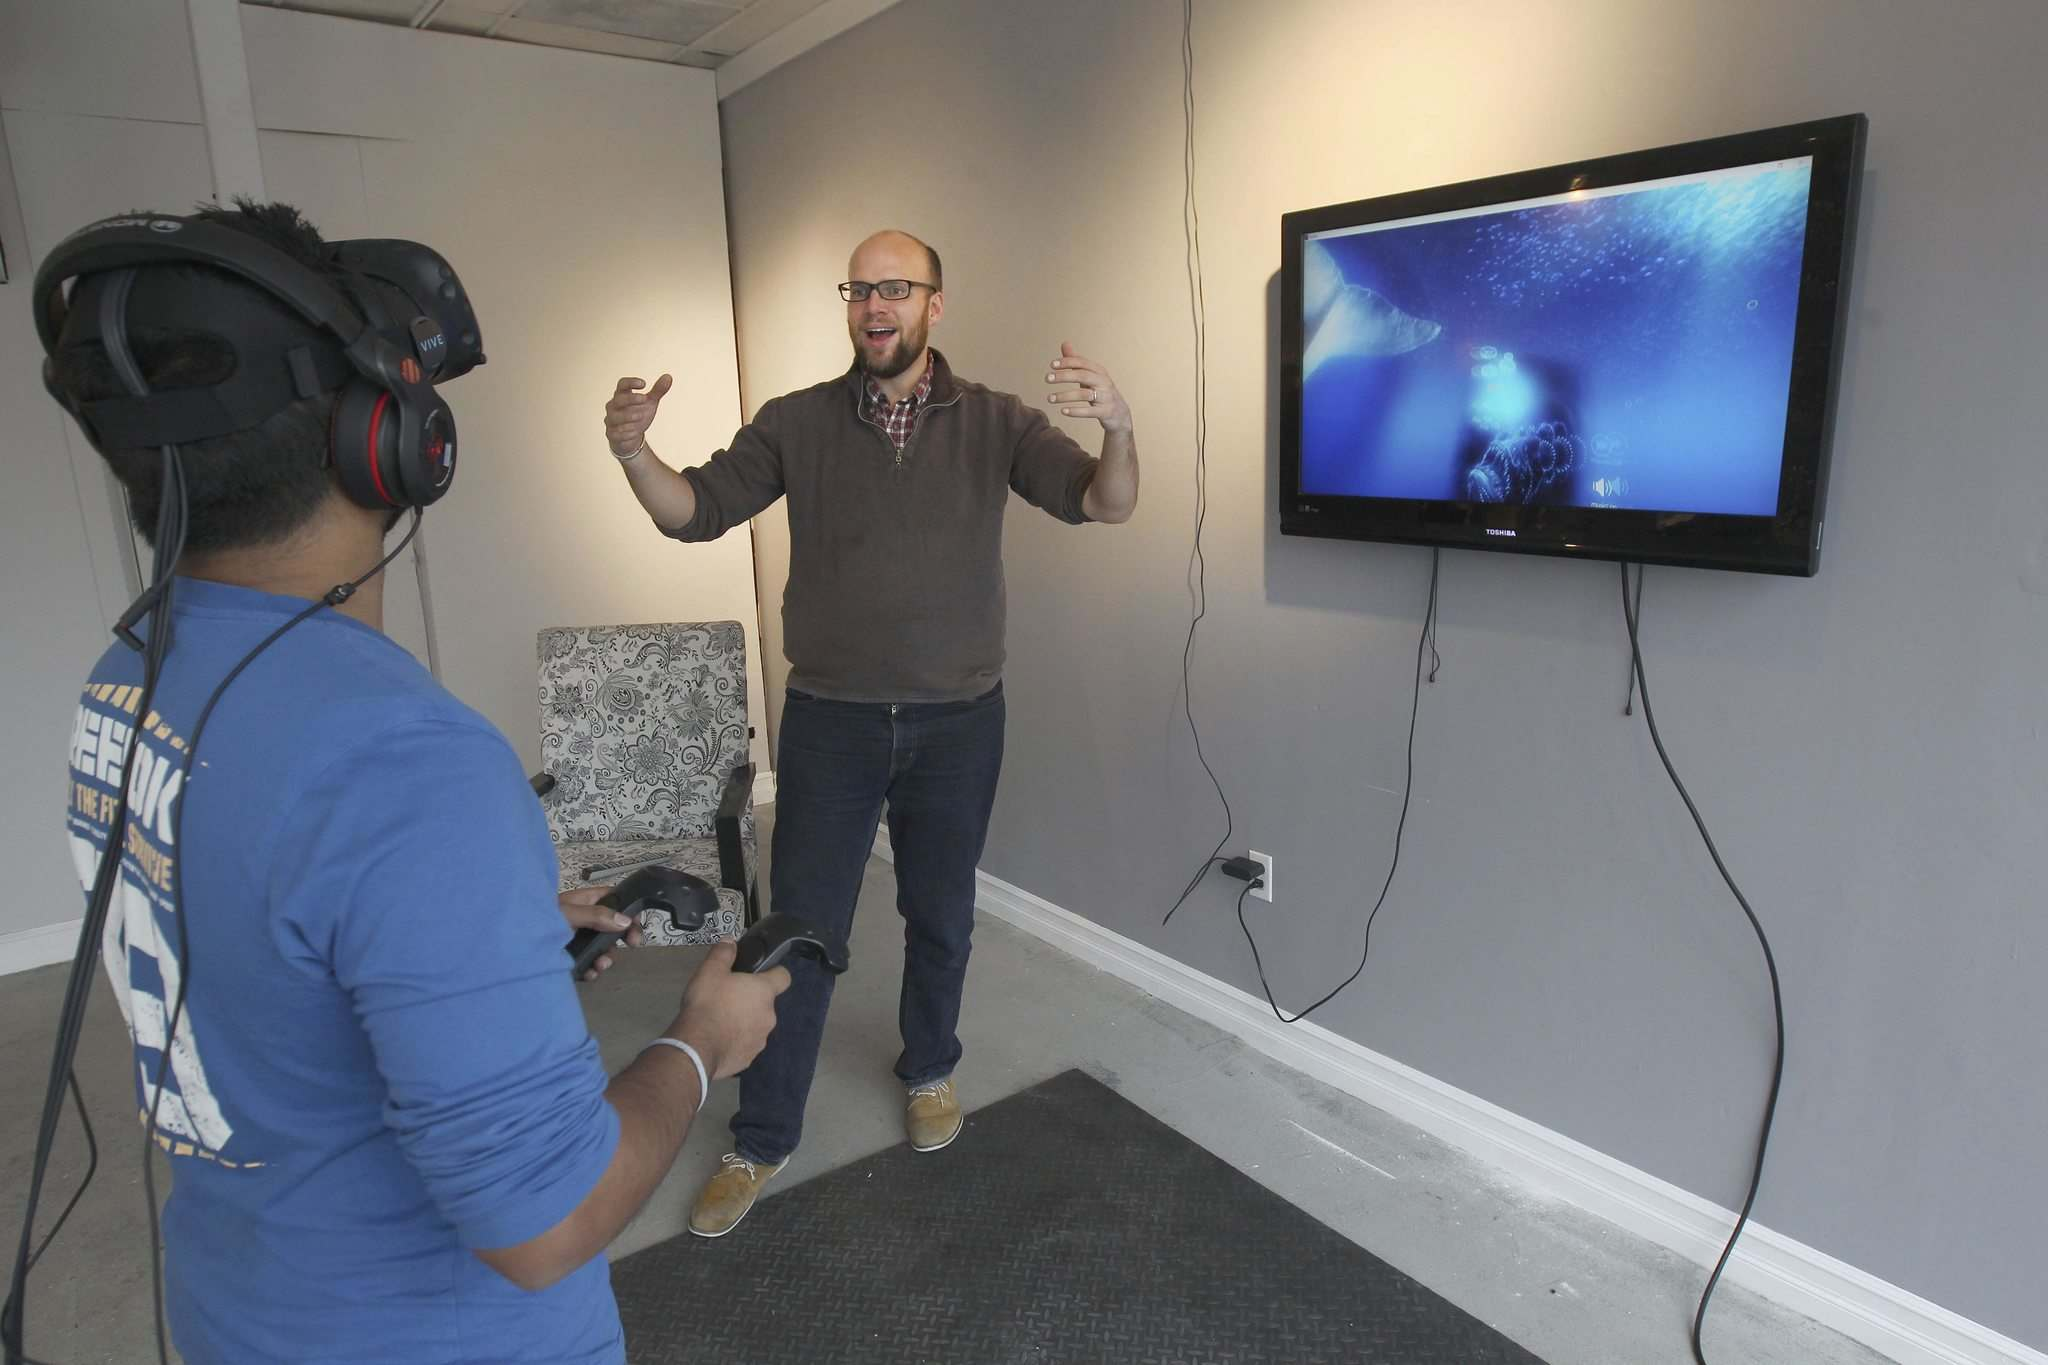 JOE BRYKSA / WINNIPEG FREE PRESS</p><p>Charith Jayawardana, Left, tries out Winnipeg&rsquo;s first Virtual Reality Arcade at The Portal with the help of owner Chris Hall.</p>